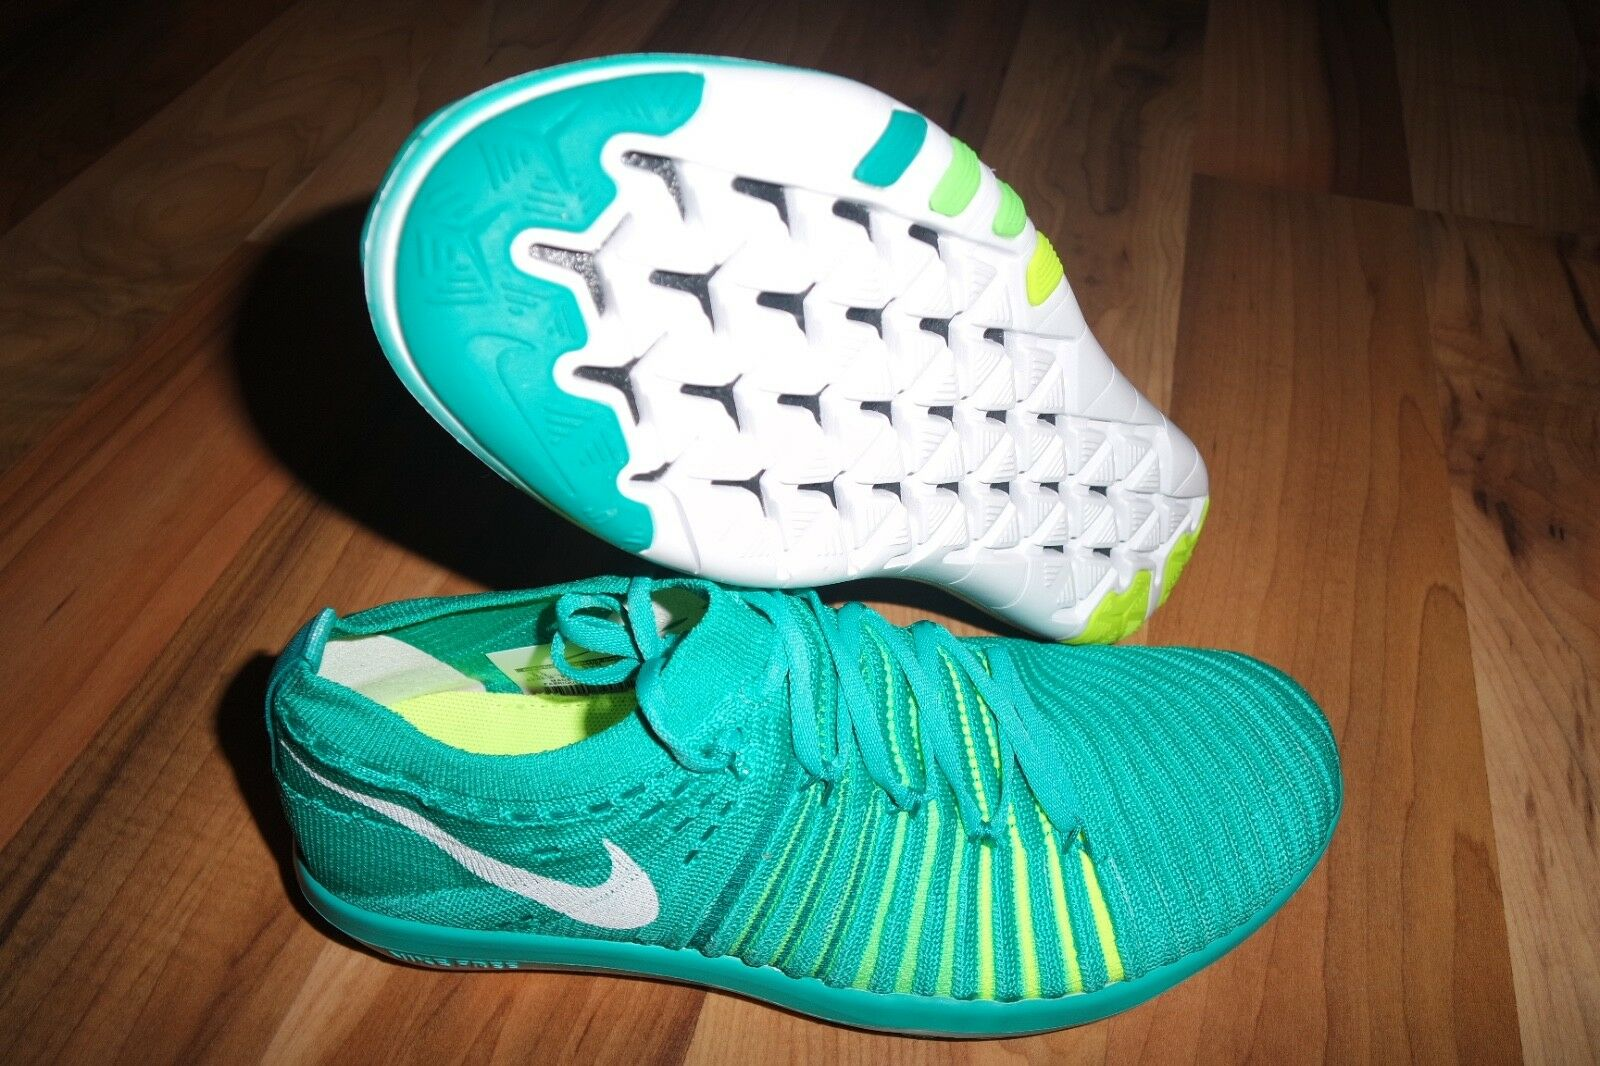 san francisco 03699 2b7c2 Nike Nike Nike WMNS Free Transform Flyknit Running chaussures Trainers  833410 301 6.5 US 7 9bf7cc